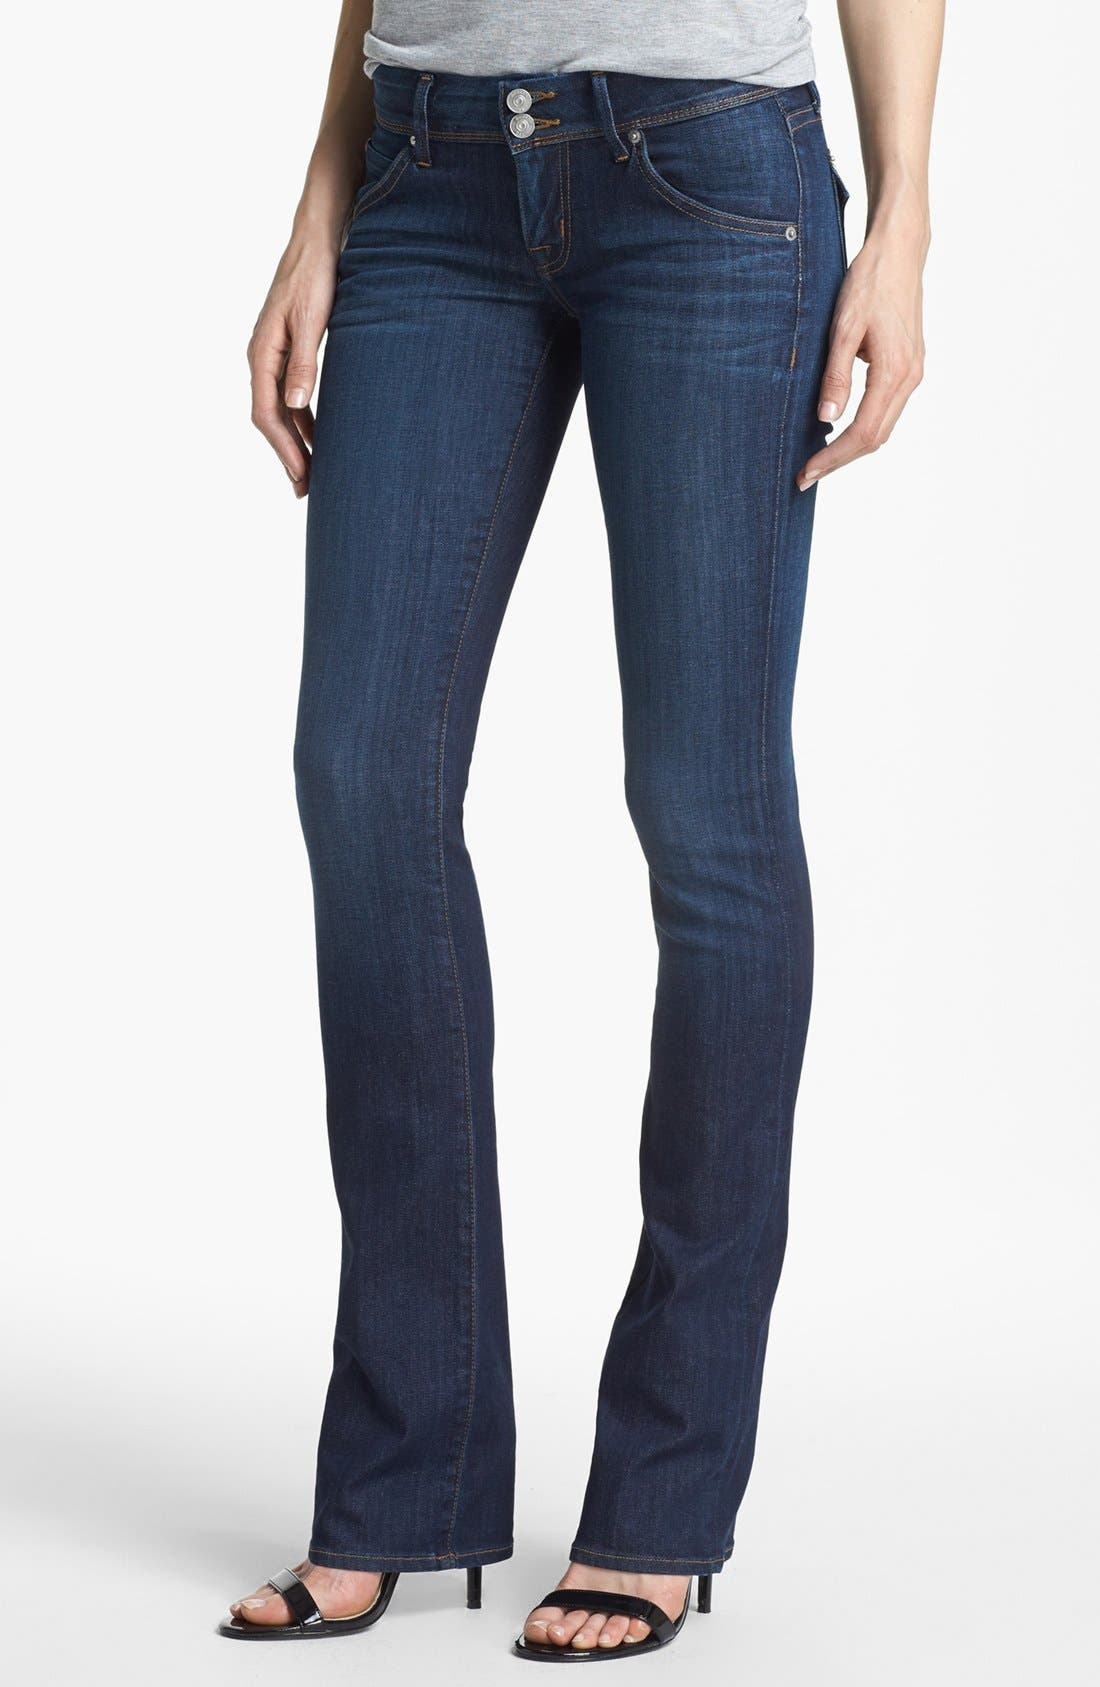 Main Image - Hudson Jeans 'Beth Supermodel' Baby Bootcut Jeans (Iconic)